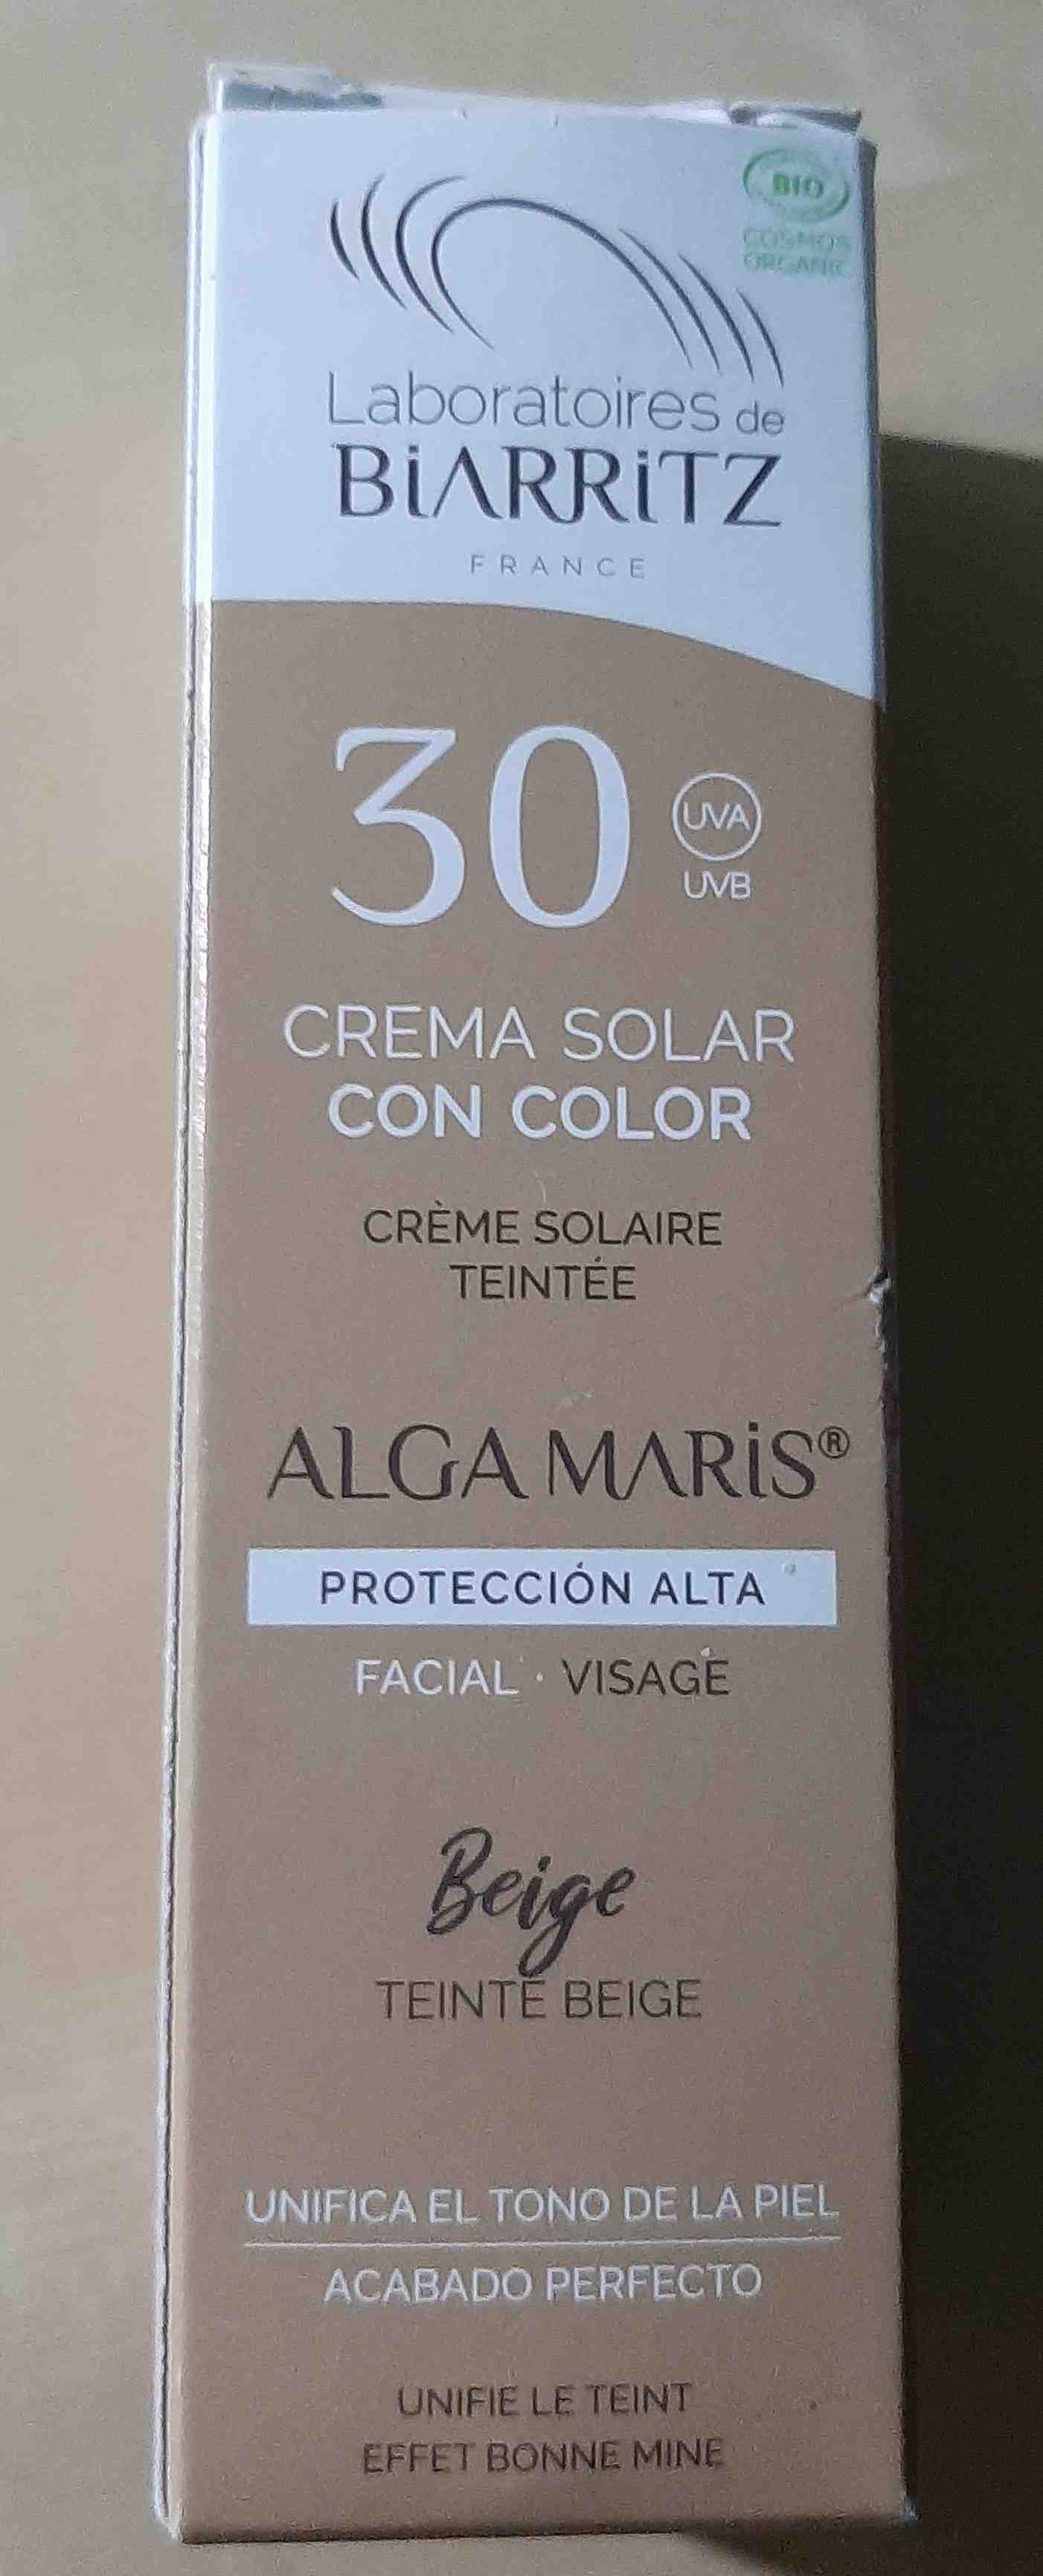 Crema solar con color. Proteccion solar. - Product - en